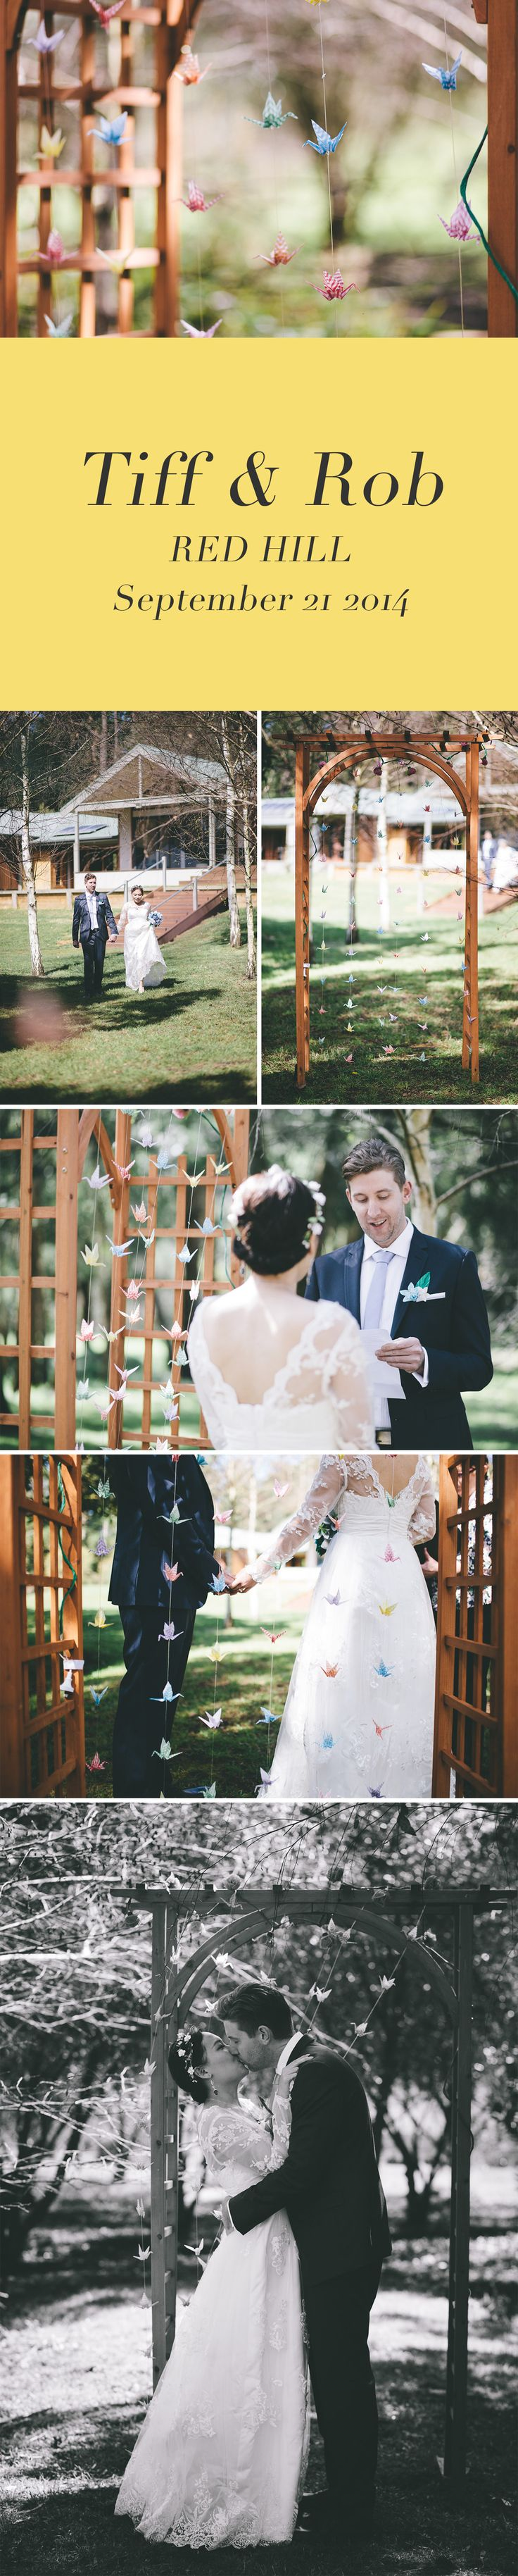 Red Hill Elopement with a backdrop of paper cranes